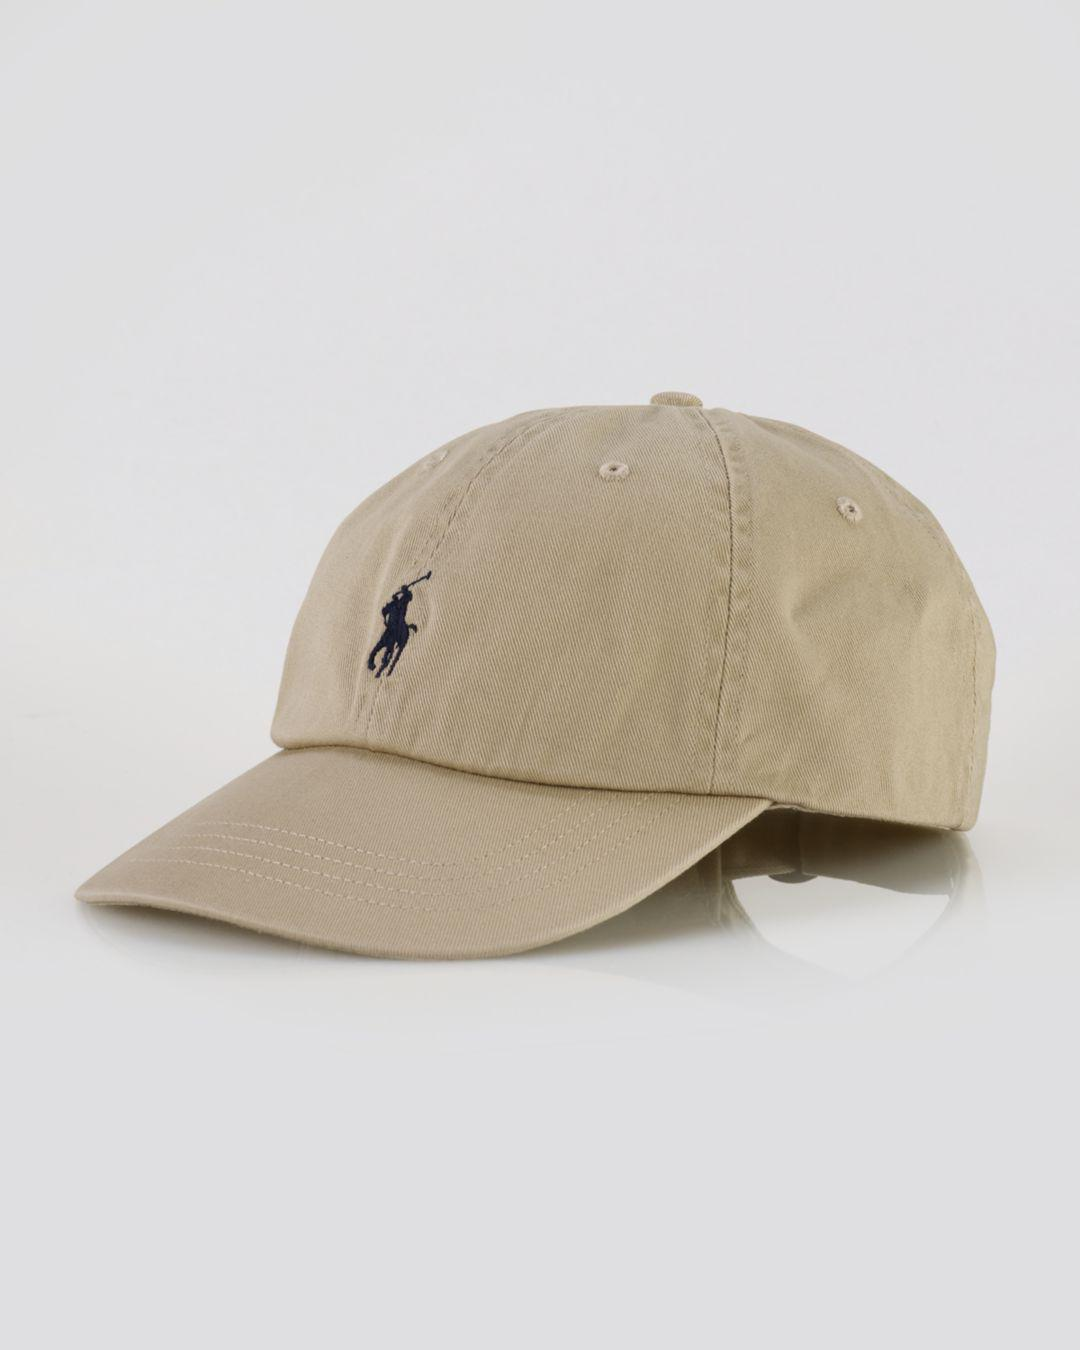 4dae18d377cc Lyst - Polo Ralph Lauren Signature Pony Hat in Blue for Men - Save 46%